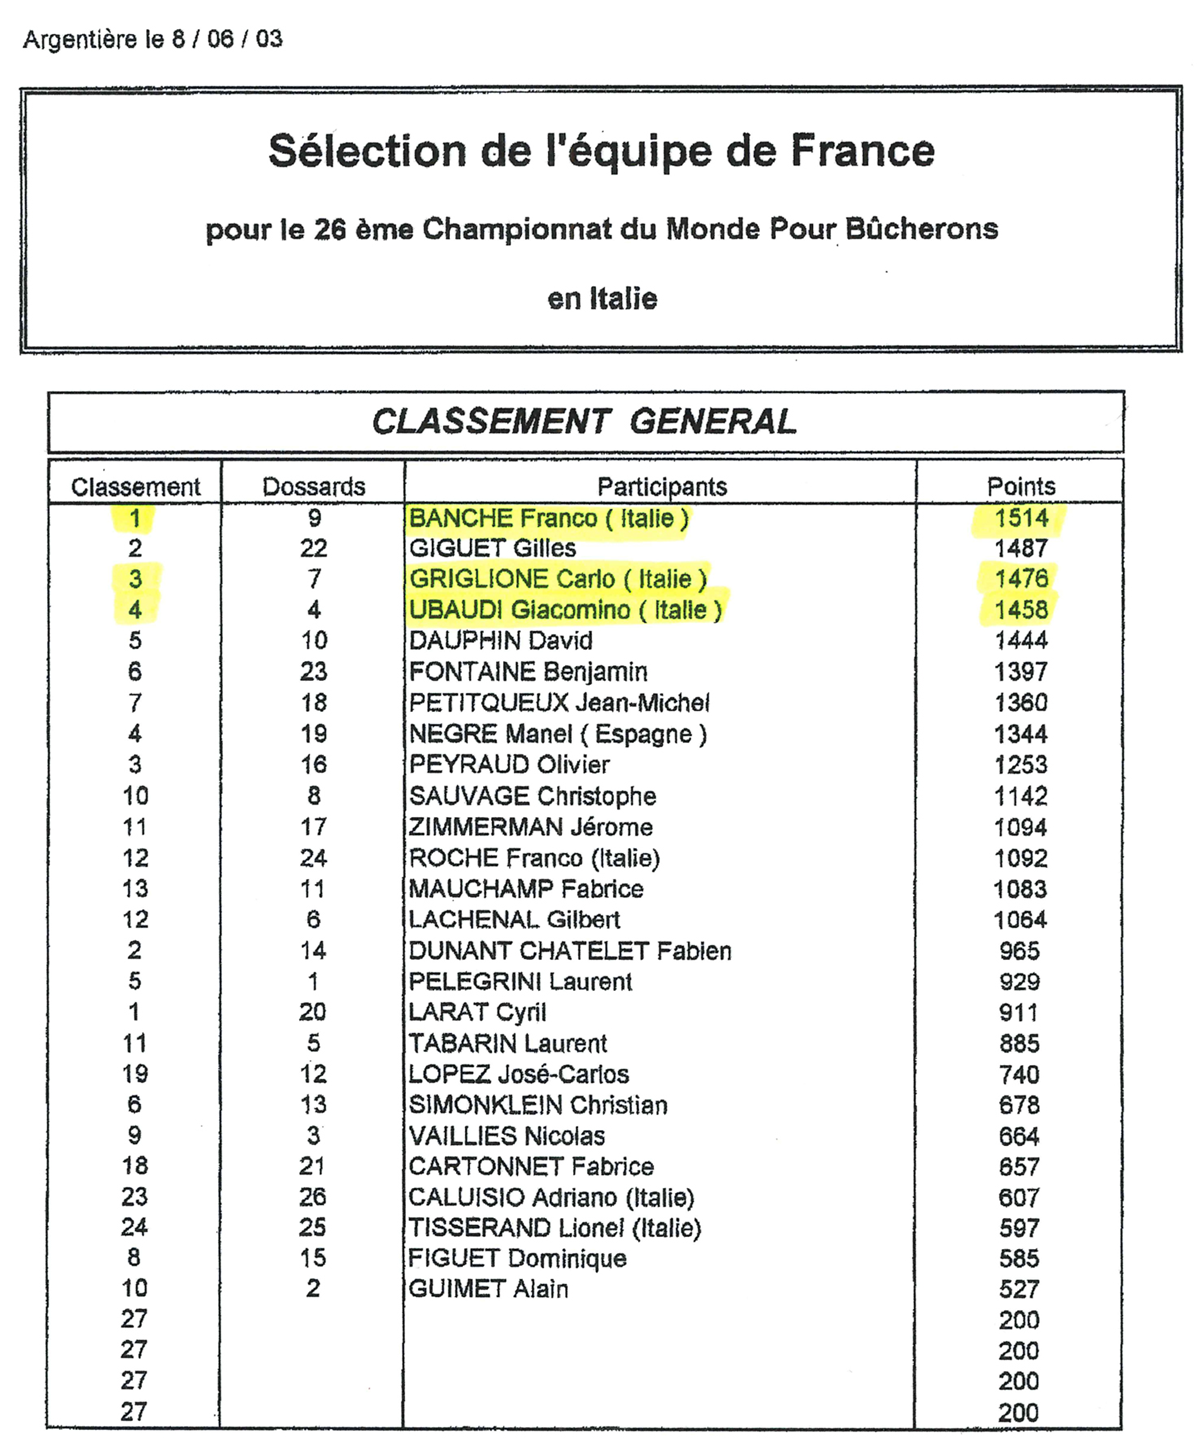 Classifica del 6 giugno 2003, test event ad Argentiere in Francia